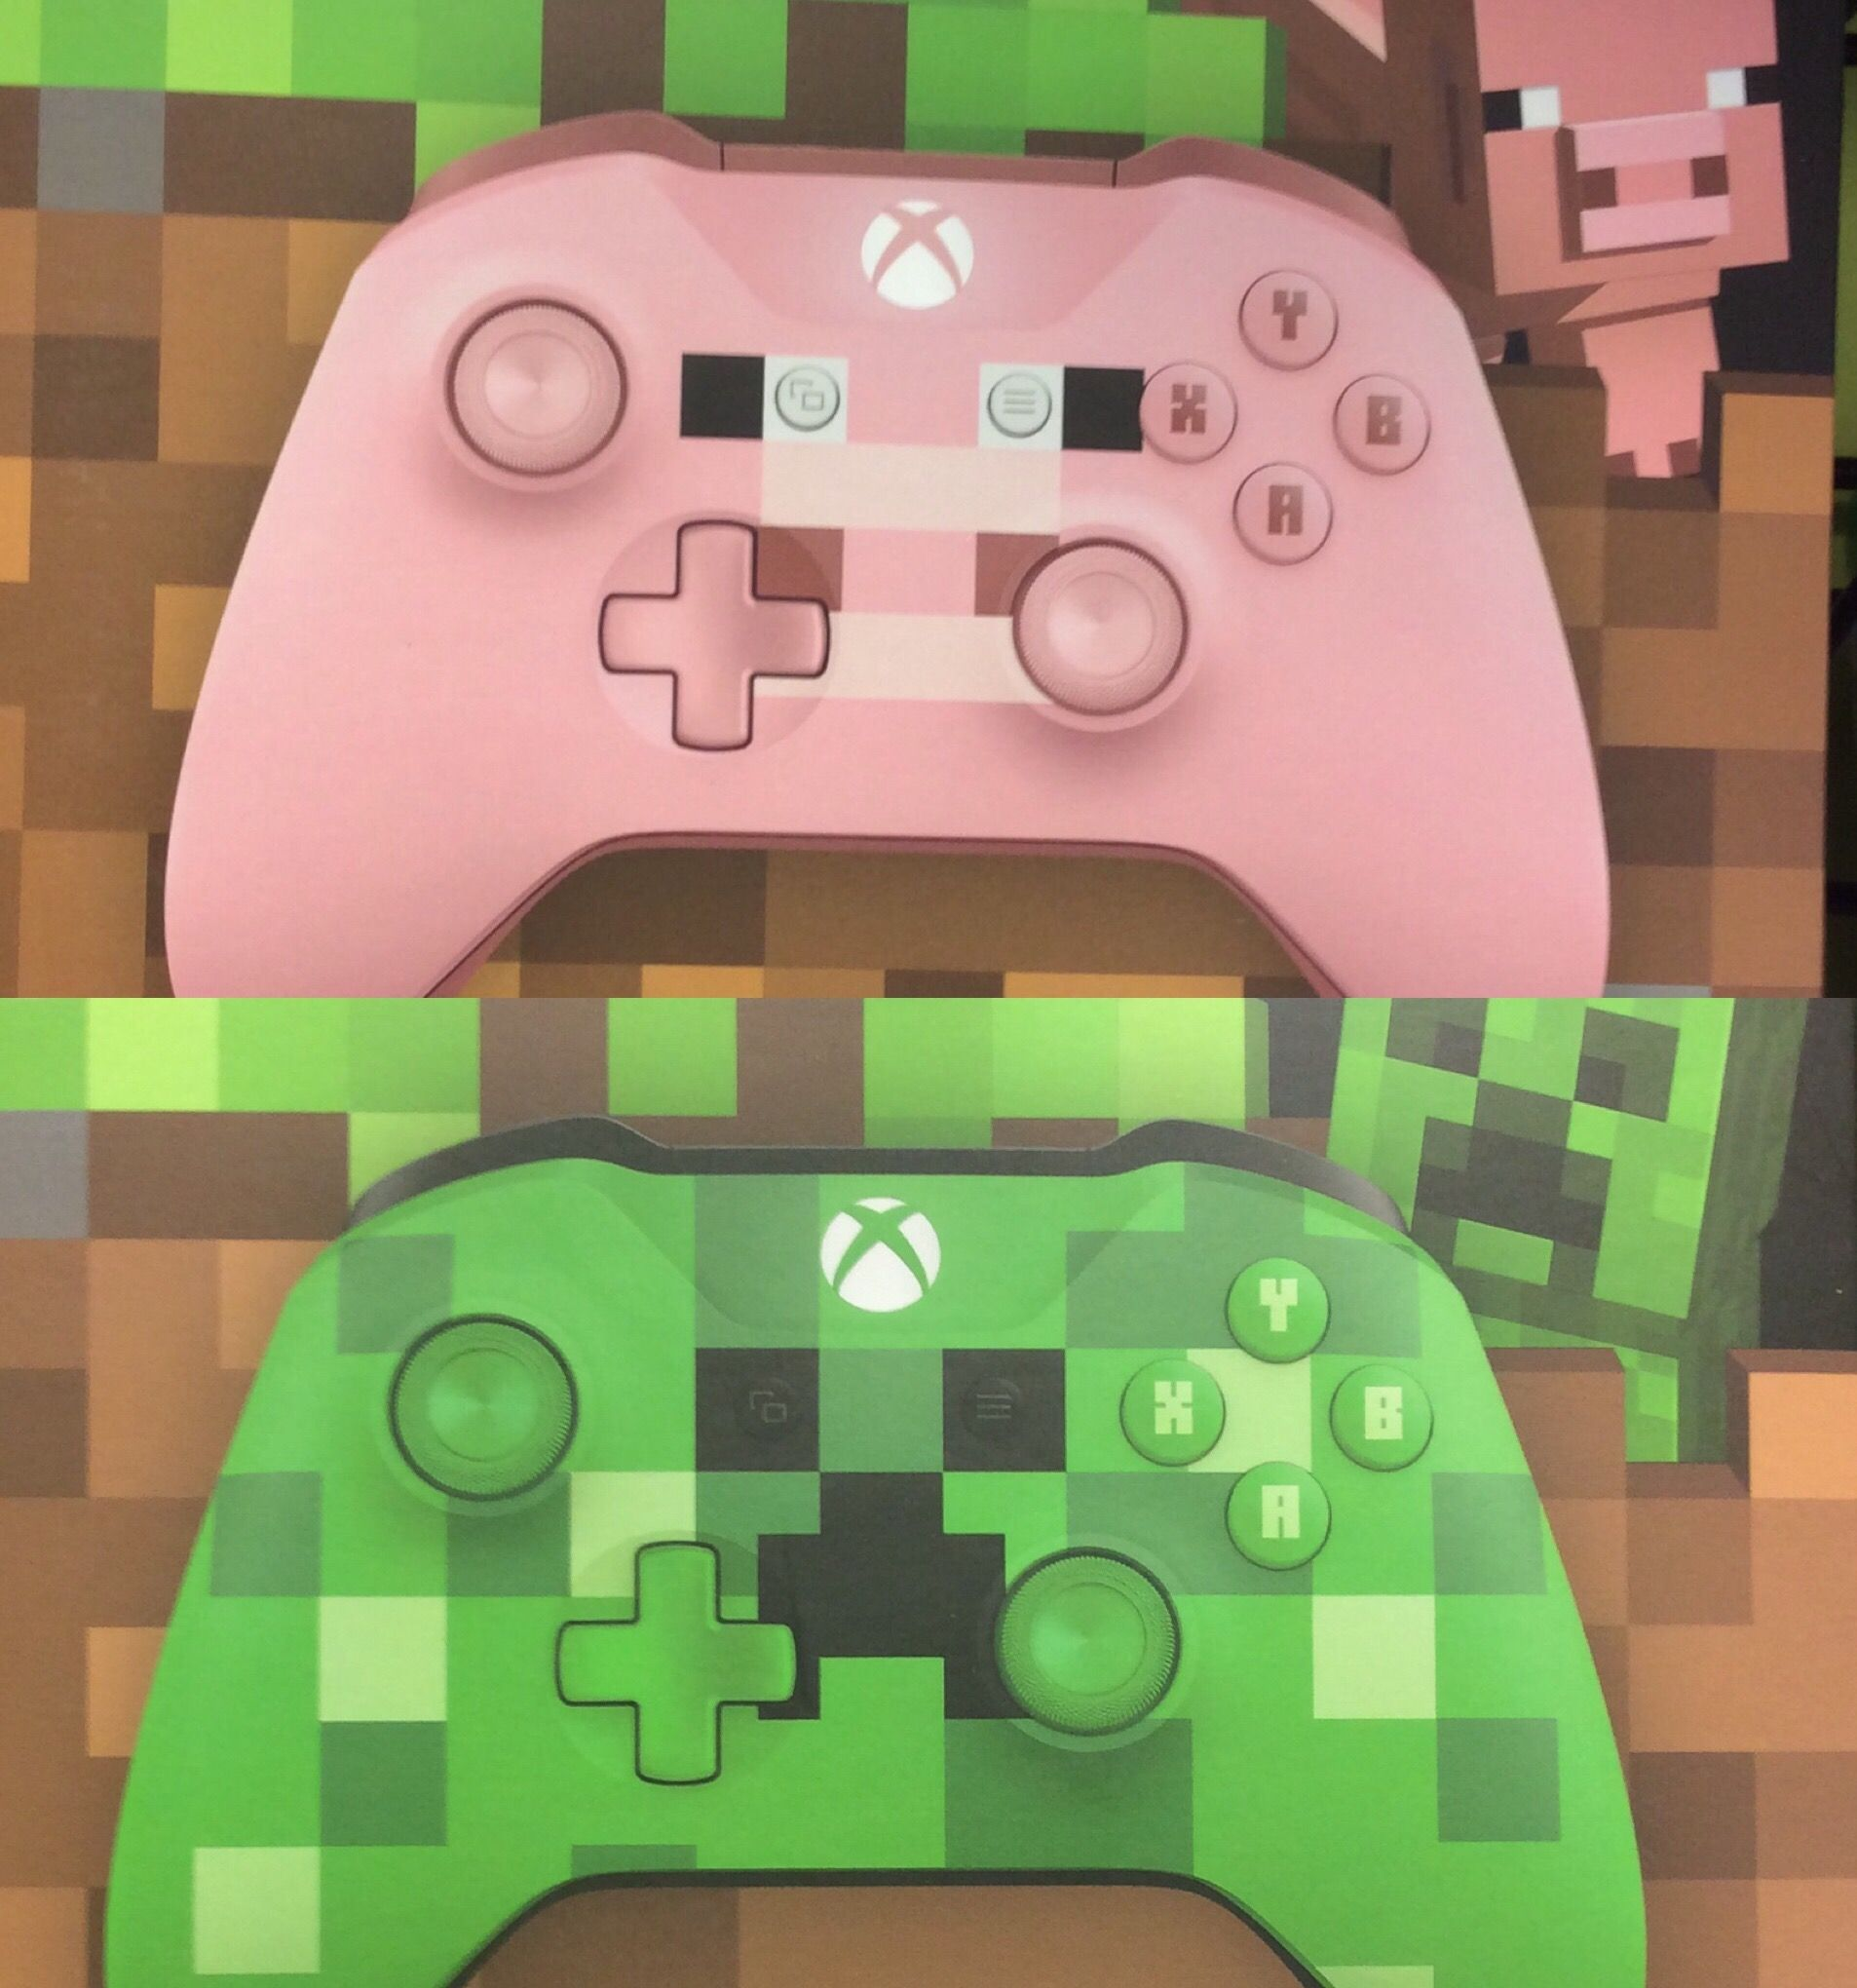 We Have The Minecraft Pig And Creeper Controller Here At Gamers